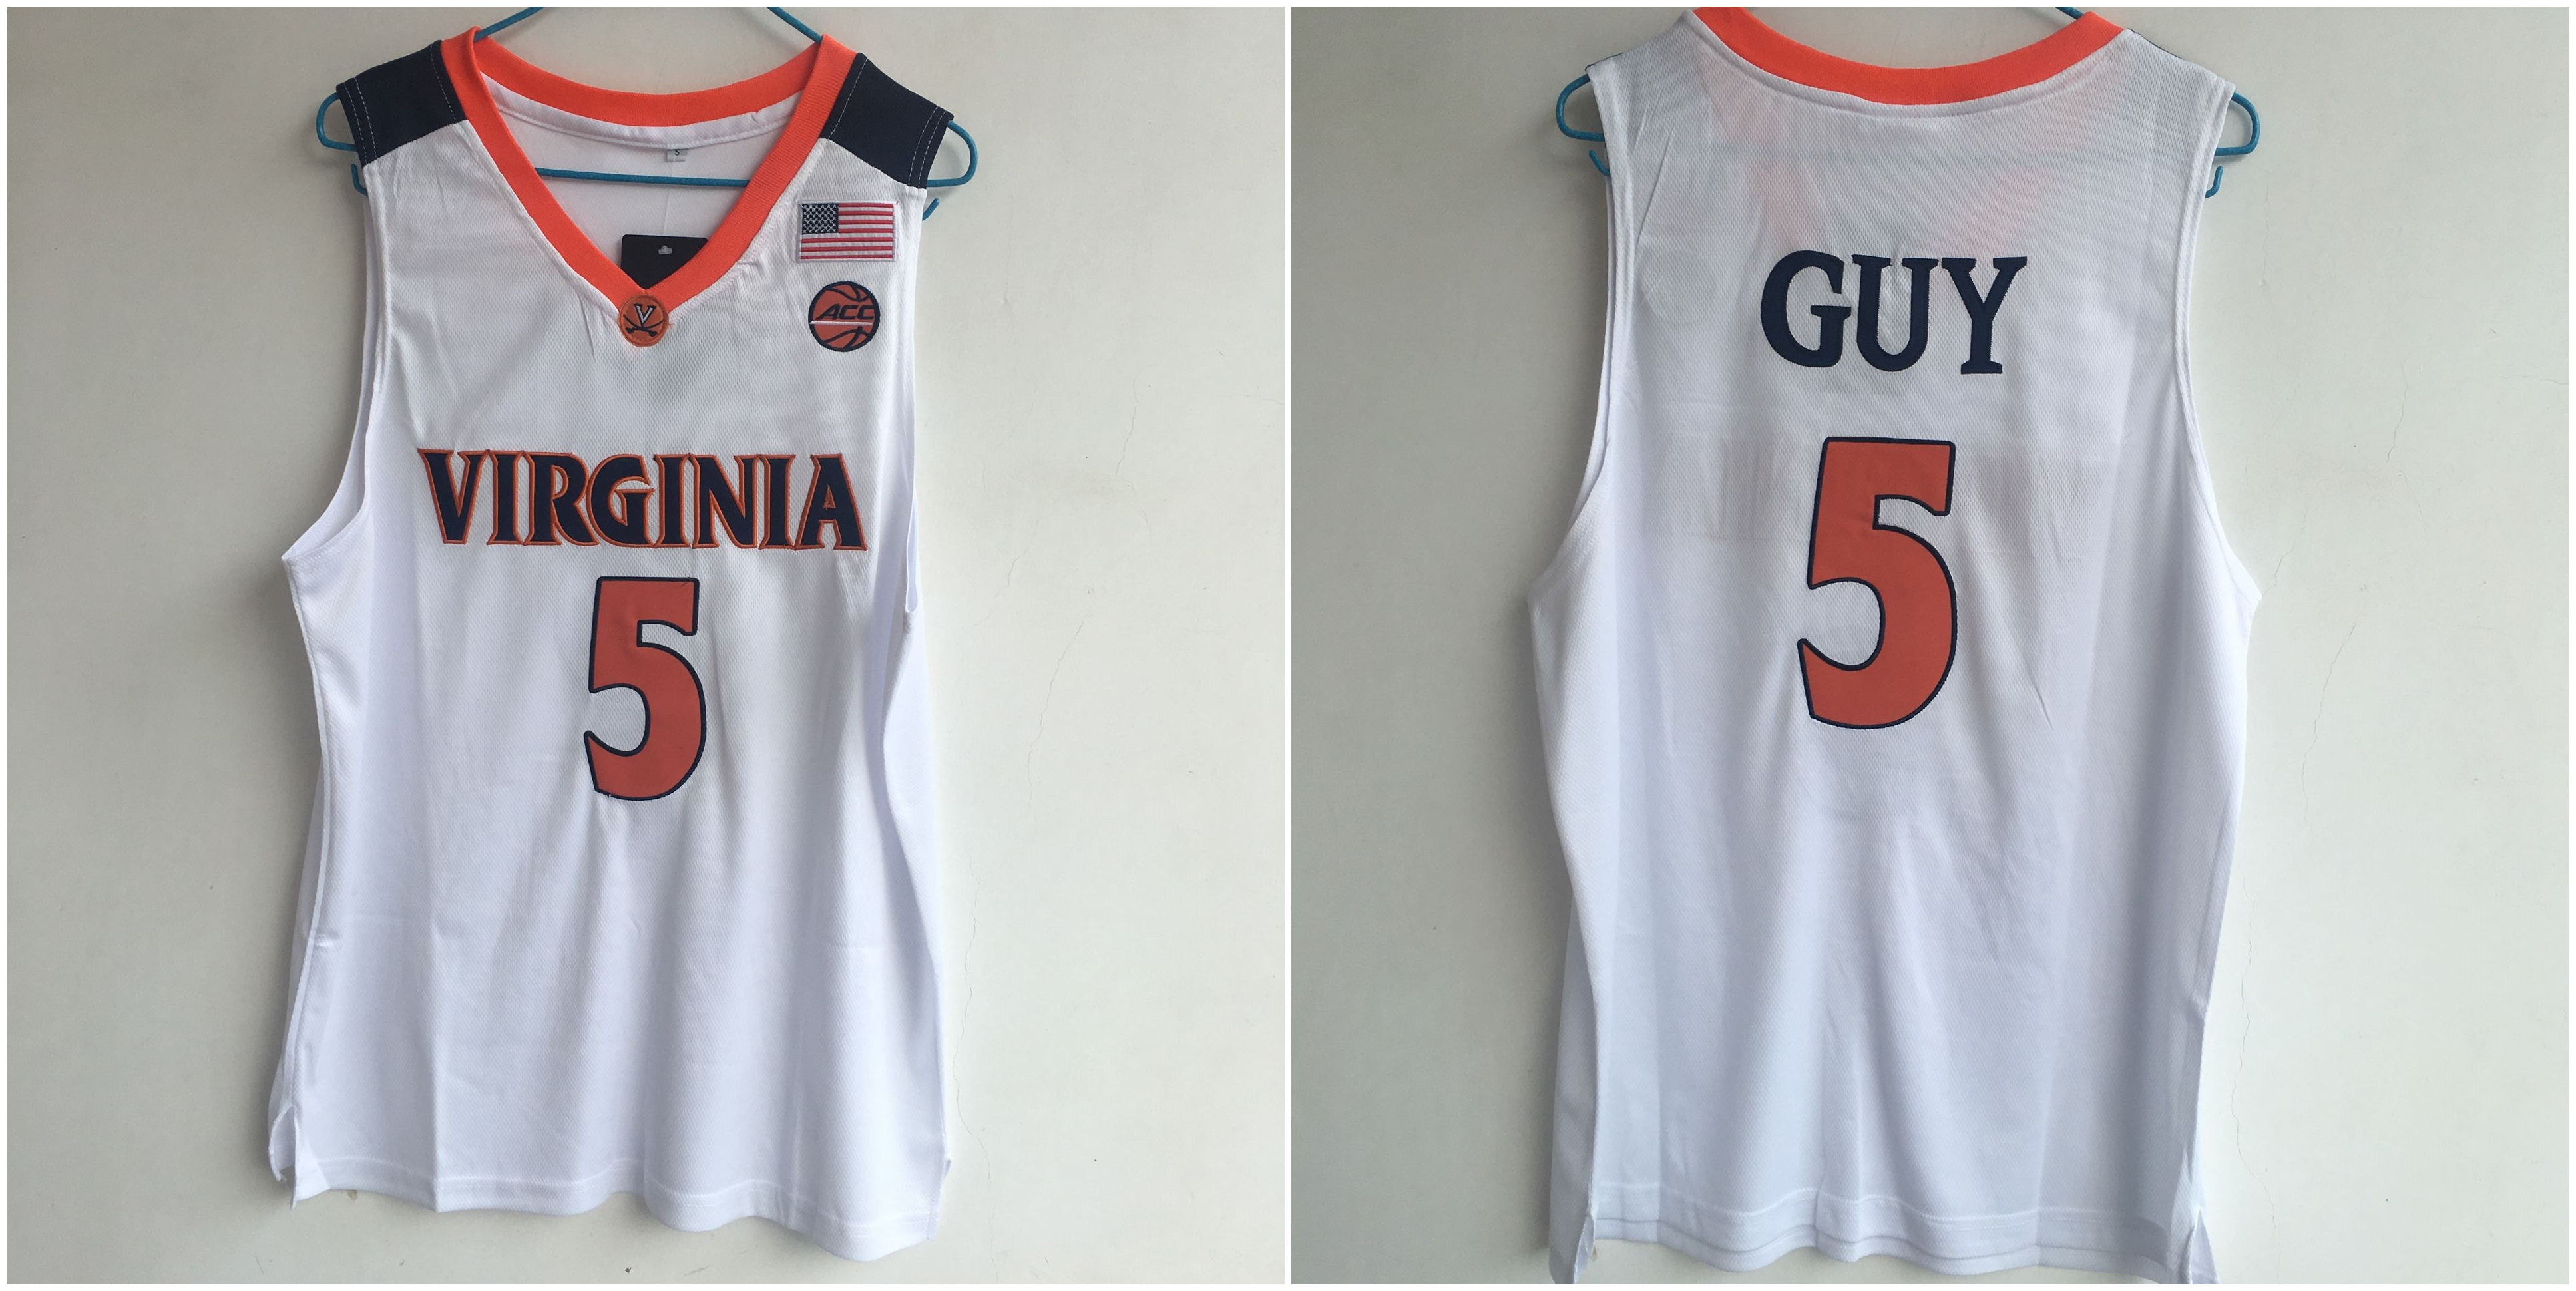 Virginia Cavaliers 5 Kyle Guy White College Basketball Jersey